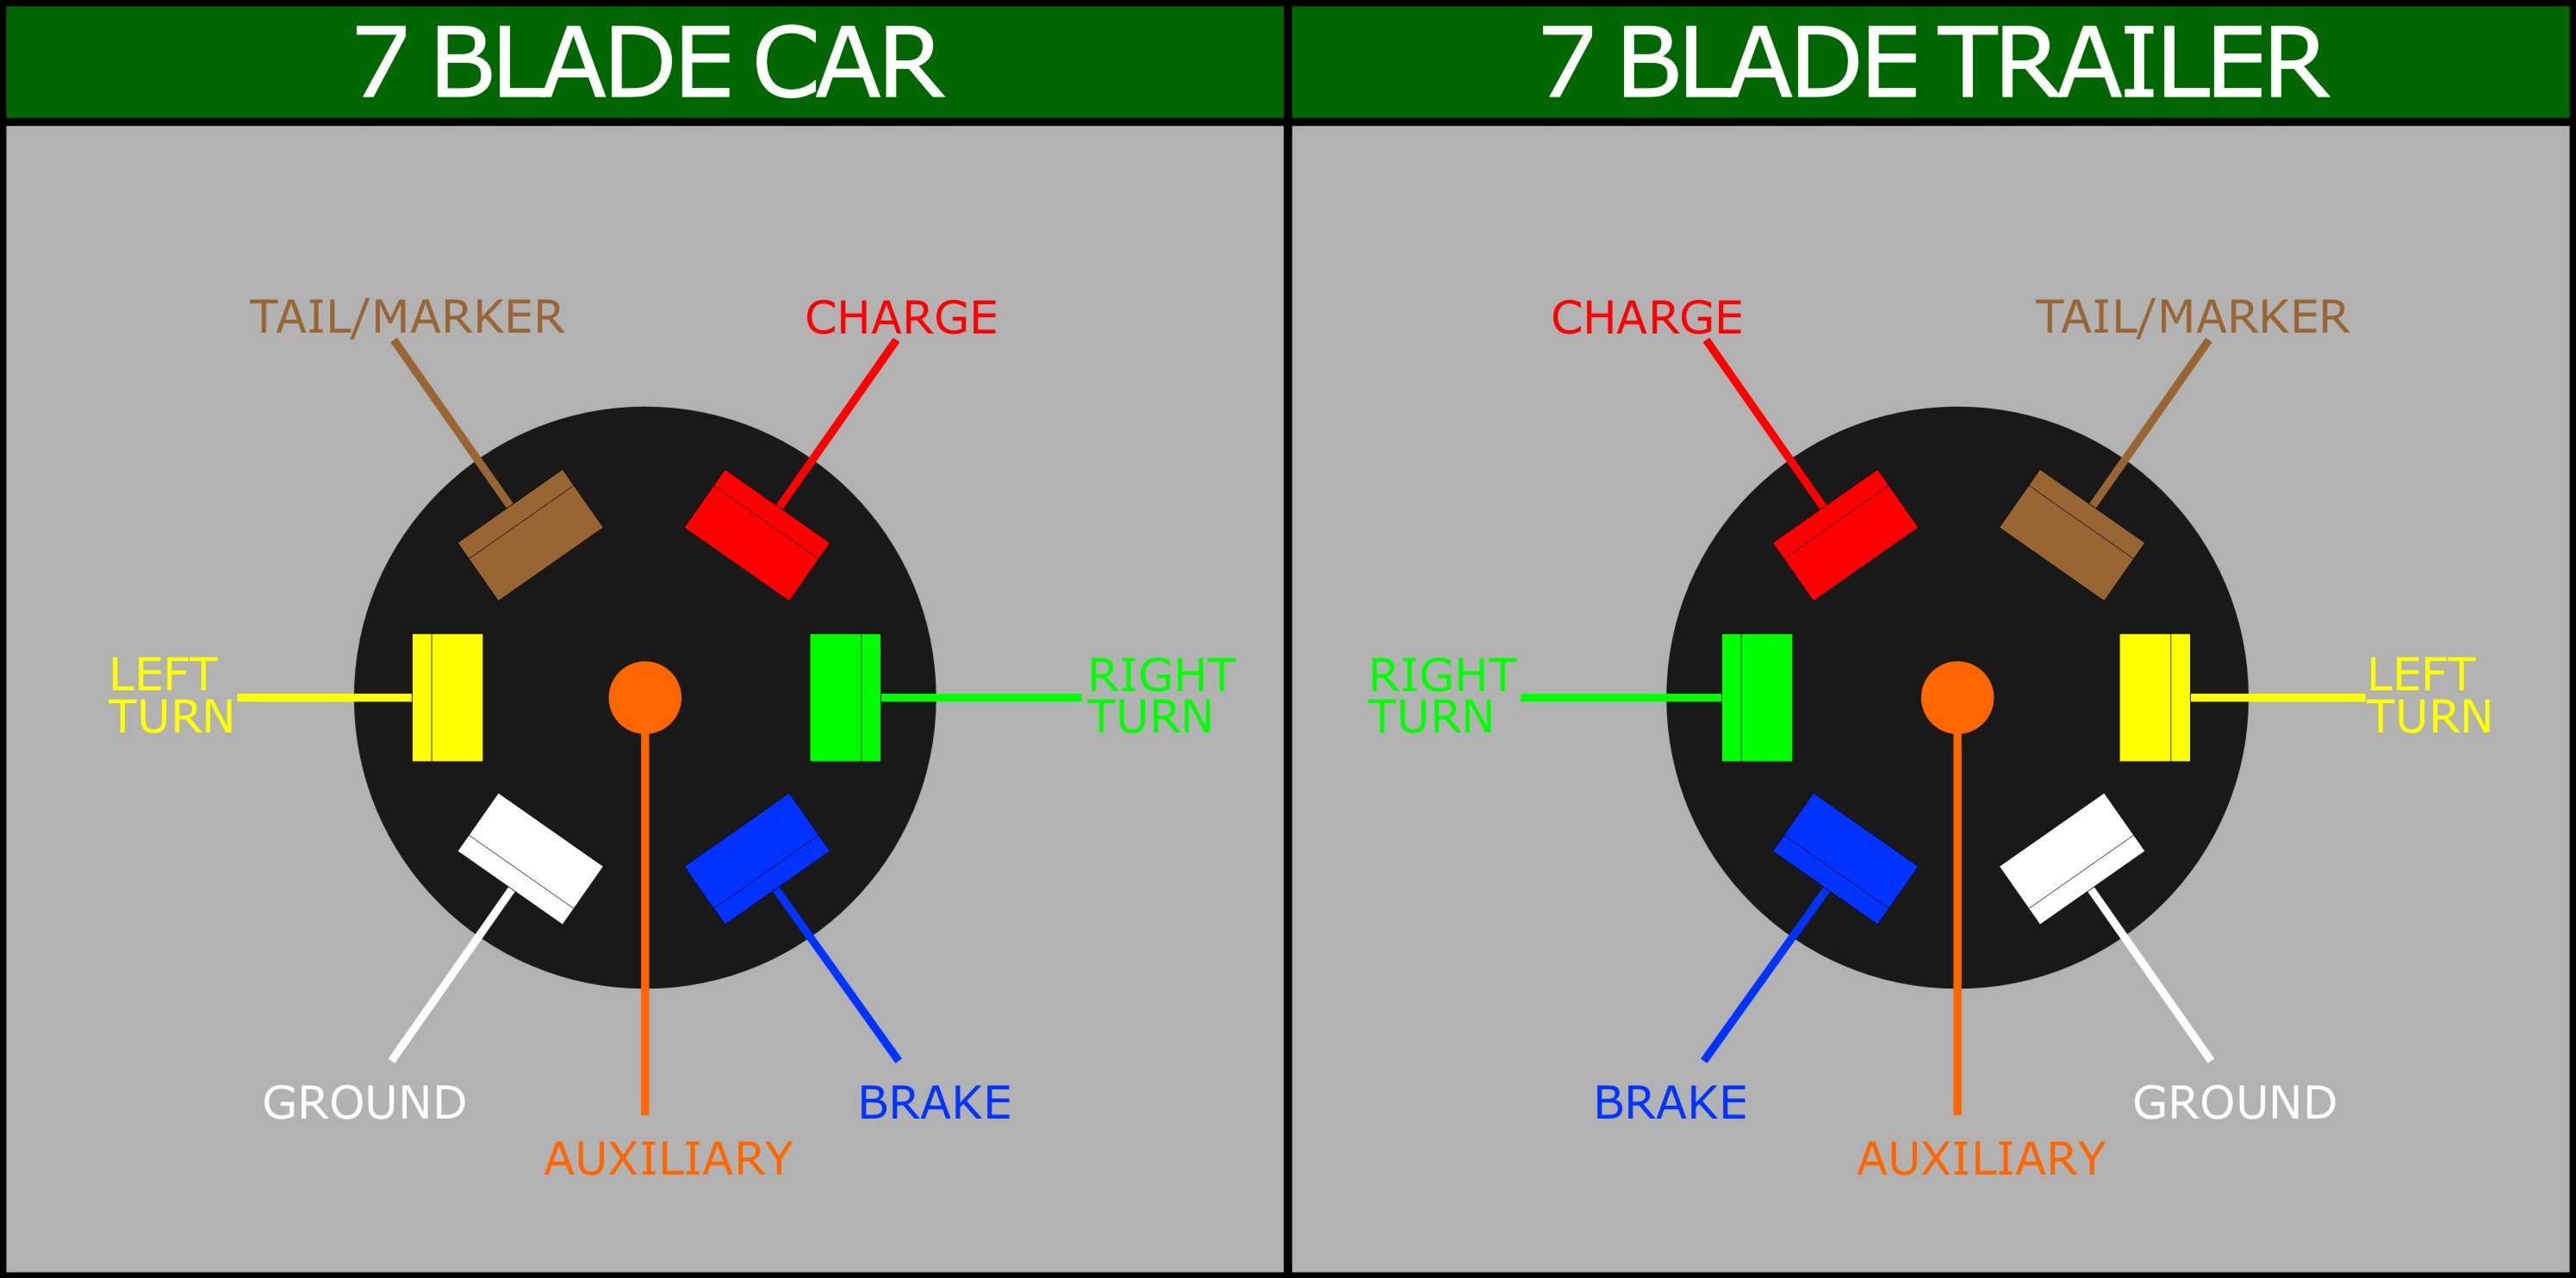 7 Blade Wiring Diagram: Wiring a 7 Blade Trailer Harness or Plug,Design